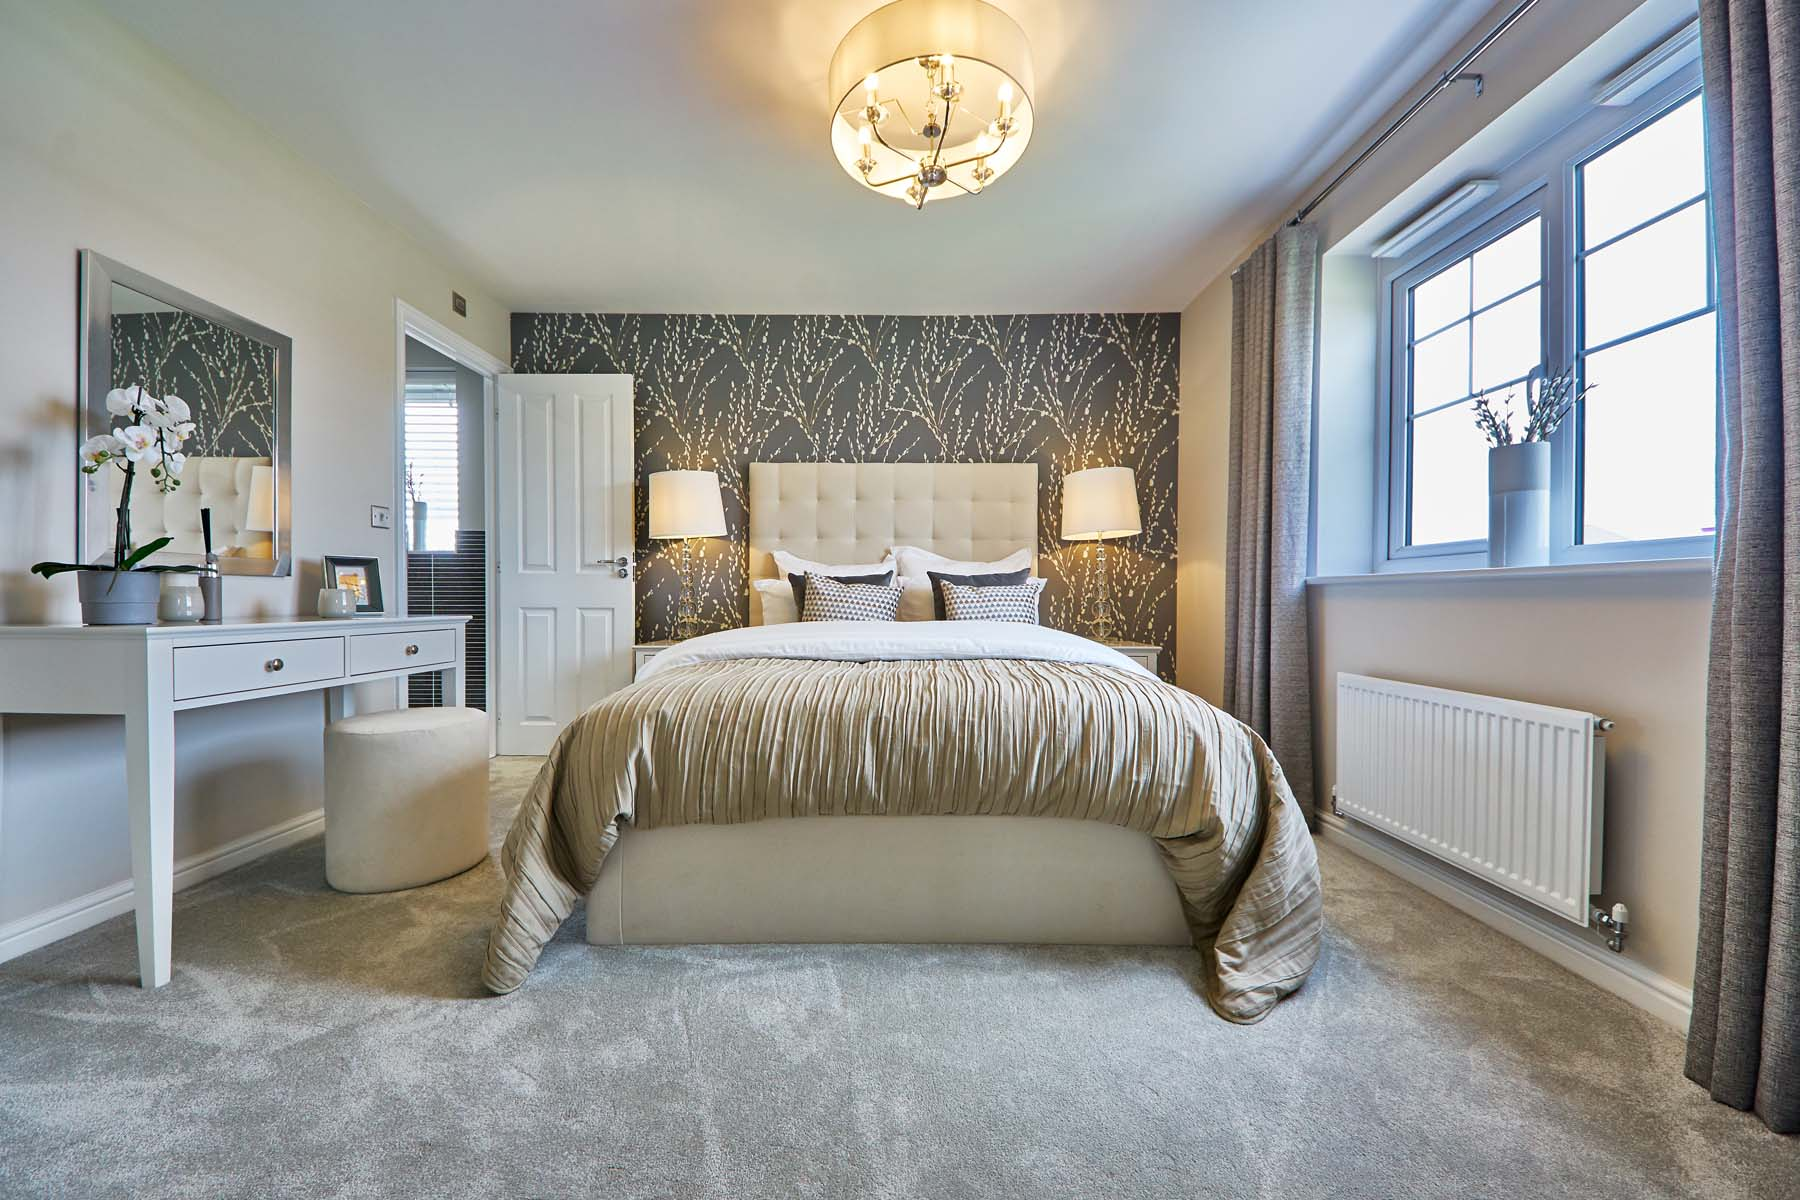 master bedroom distant - Catesby-Teasdale-SH-photography-Aug19-20